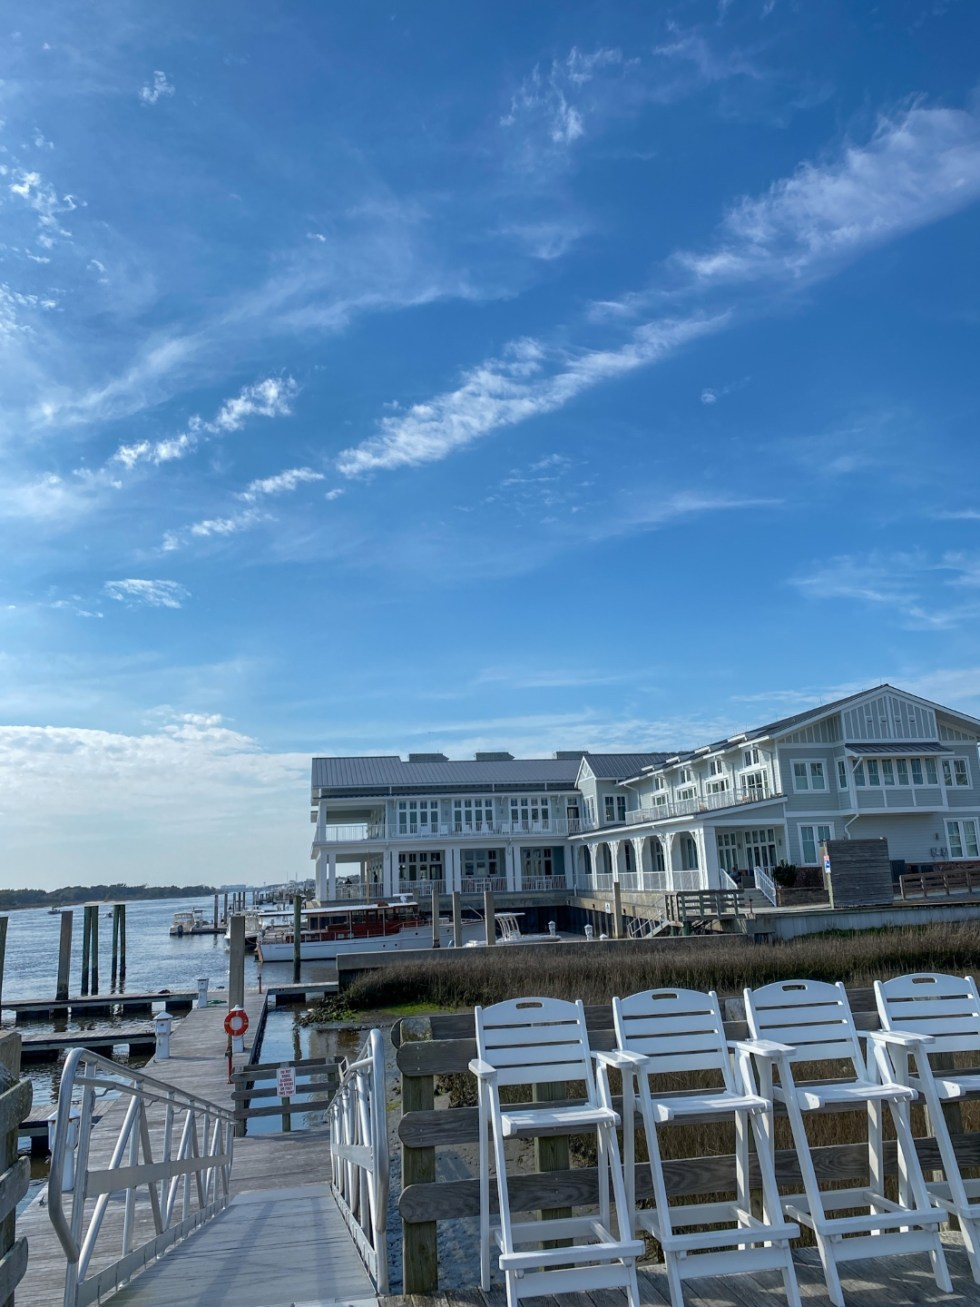 Weekend Travel: The Best Things to Do in Beaufort NC in 48 Hours - I'm Fixin' To - @imfixintoblog |Things to Do in Beaufort NC by popular NC travel blog, I'm Fixin' To: image of a ocean front hotel.